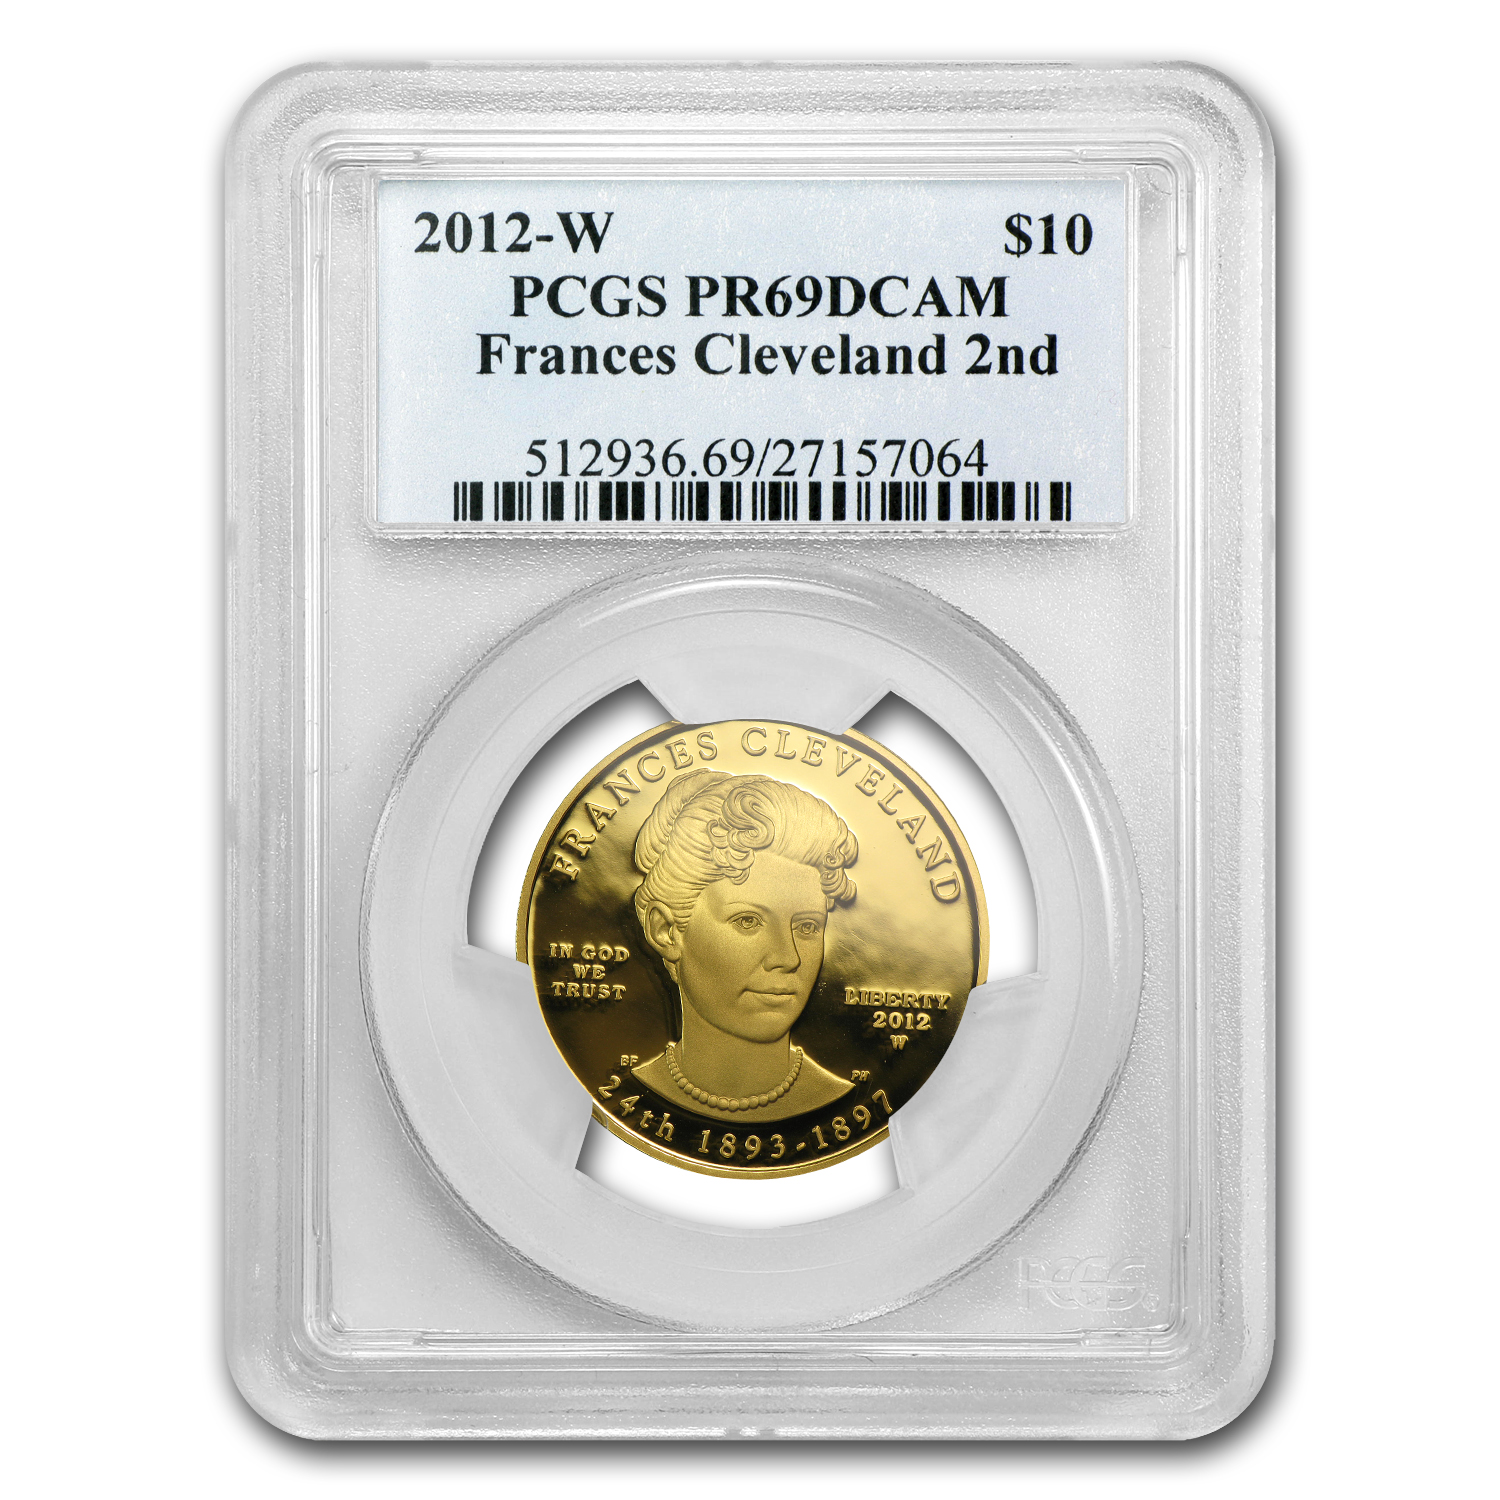 2012-W 1/2 oz Proof Gold Frances Cleveland 2nd Term PR-69 PCGS